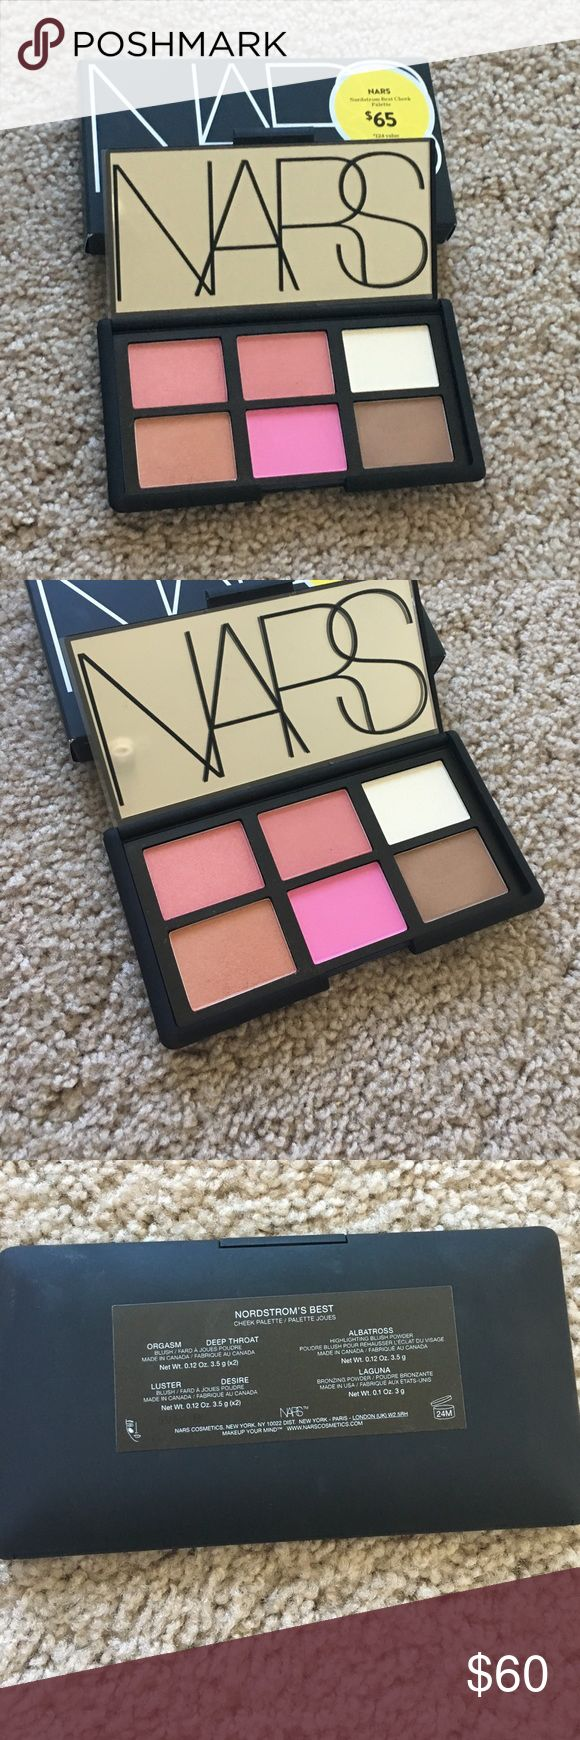 Nars limited edition blush palette Like new Nars blush palette including some bestselling shades-Laguna, Albatross and Orgasm. This palette was a Nordstrom exclusive during the anniversary sale last year and is no longer available for purchase at stores. NARS Makeup Blush